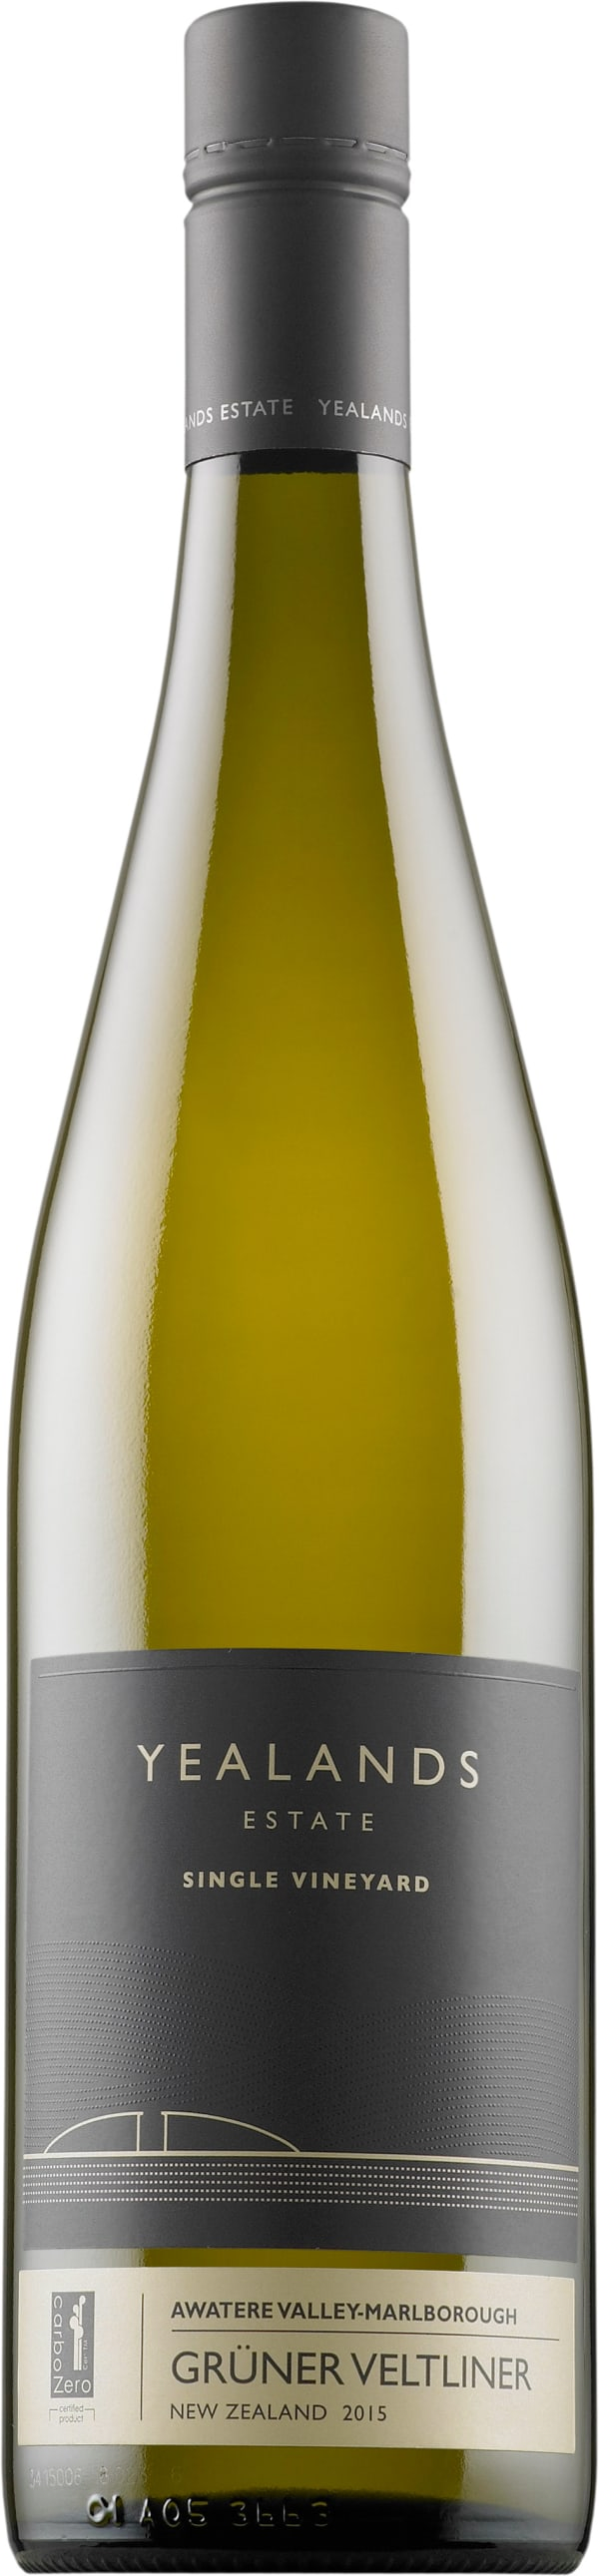 Yealands Estate Single Vineyard Grüner Veltliner 2016